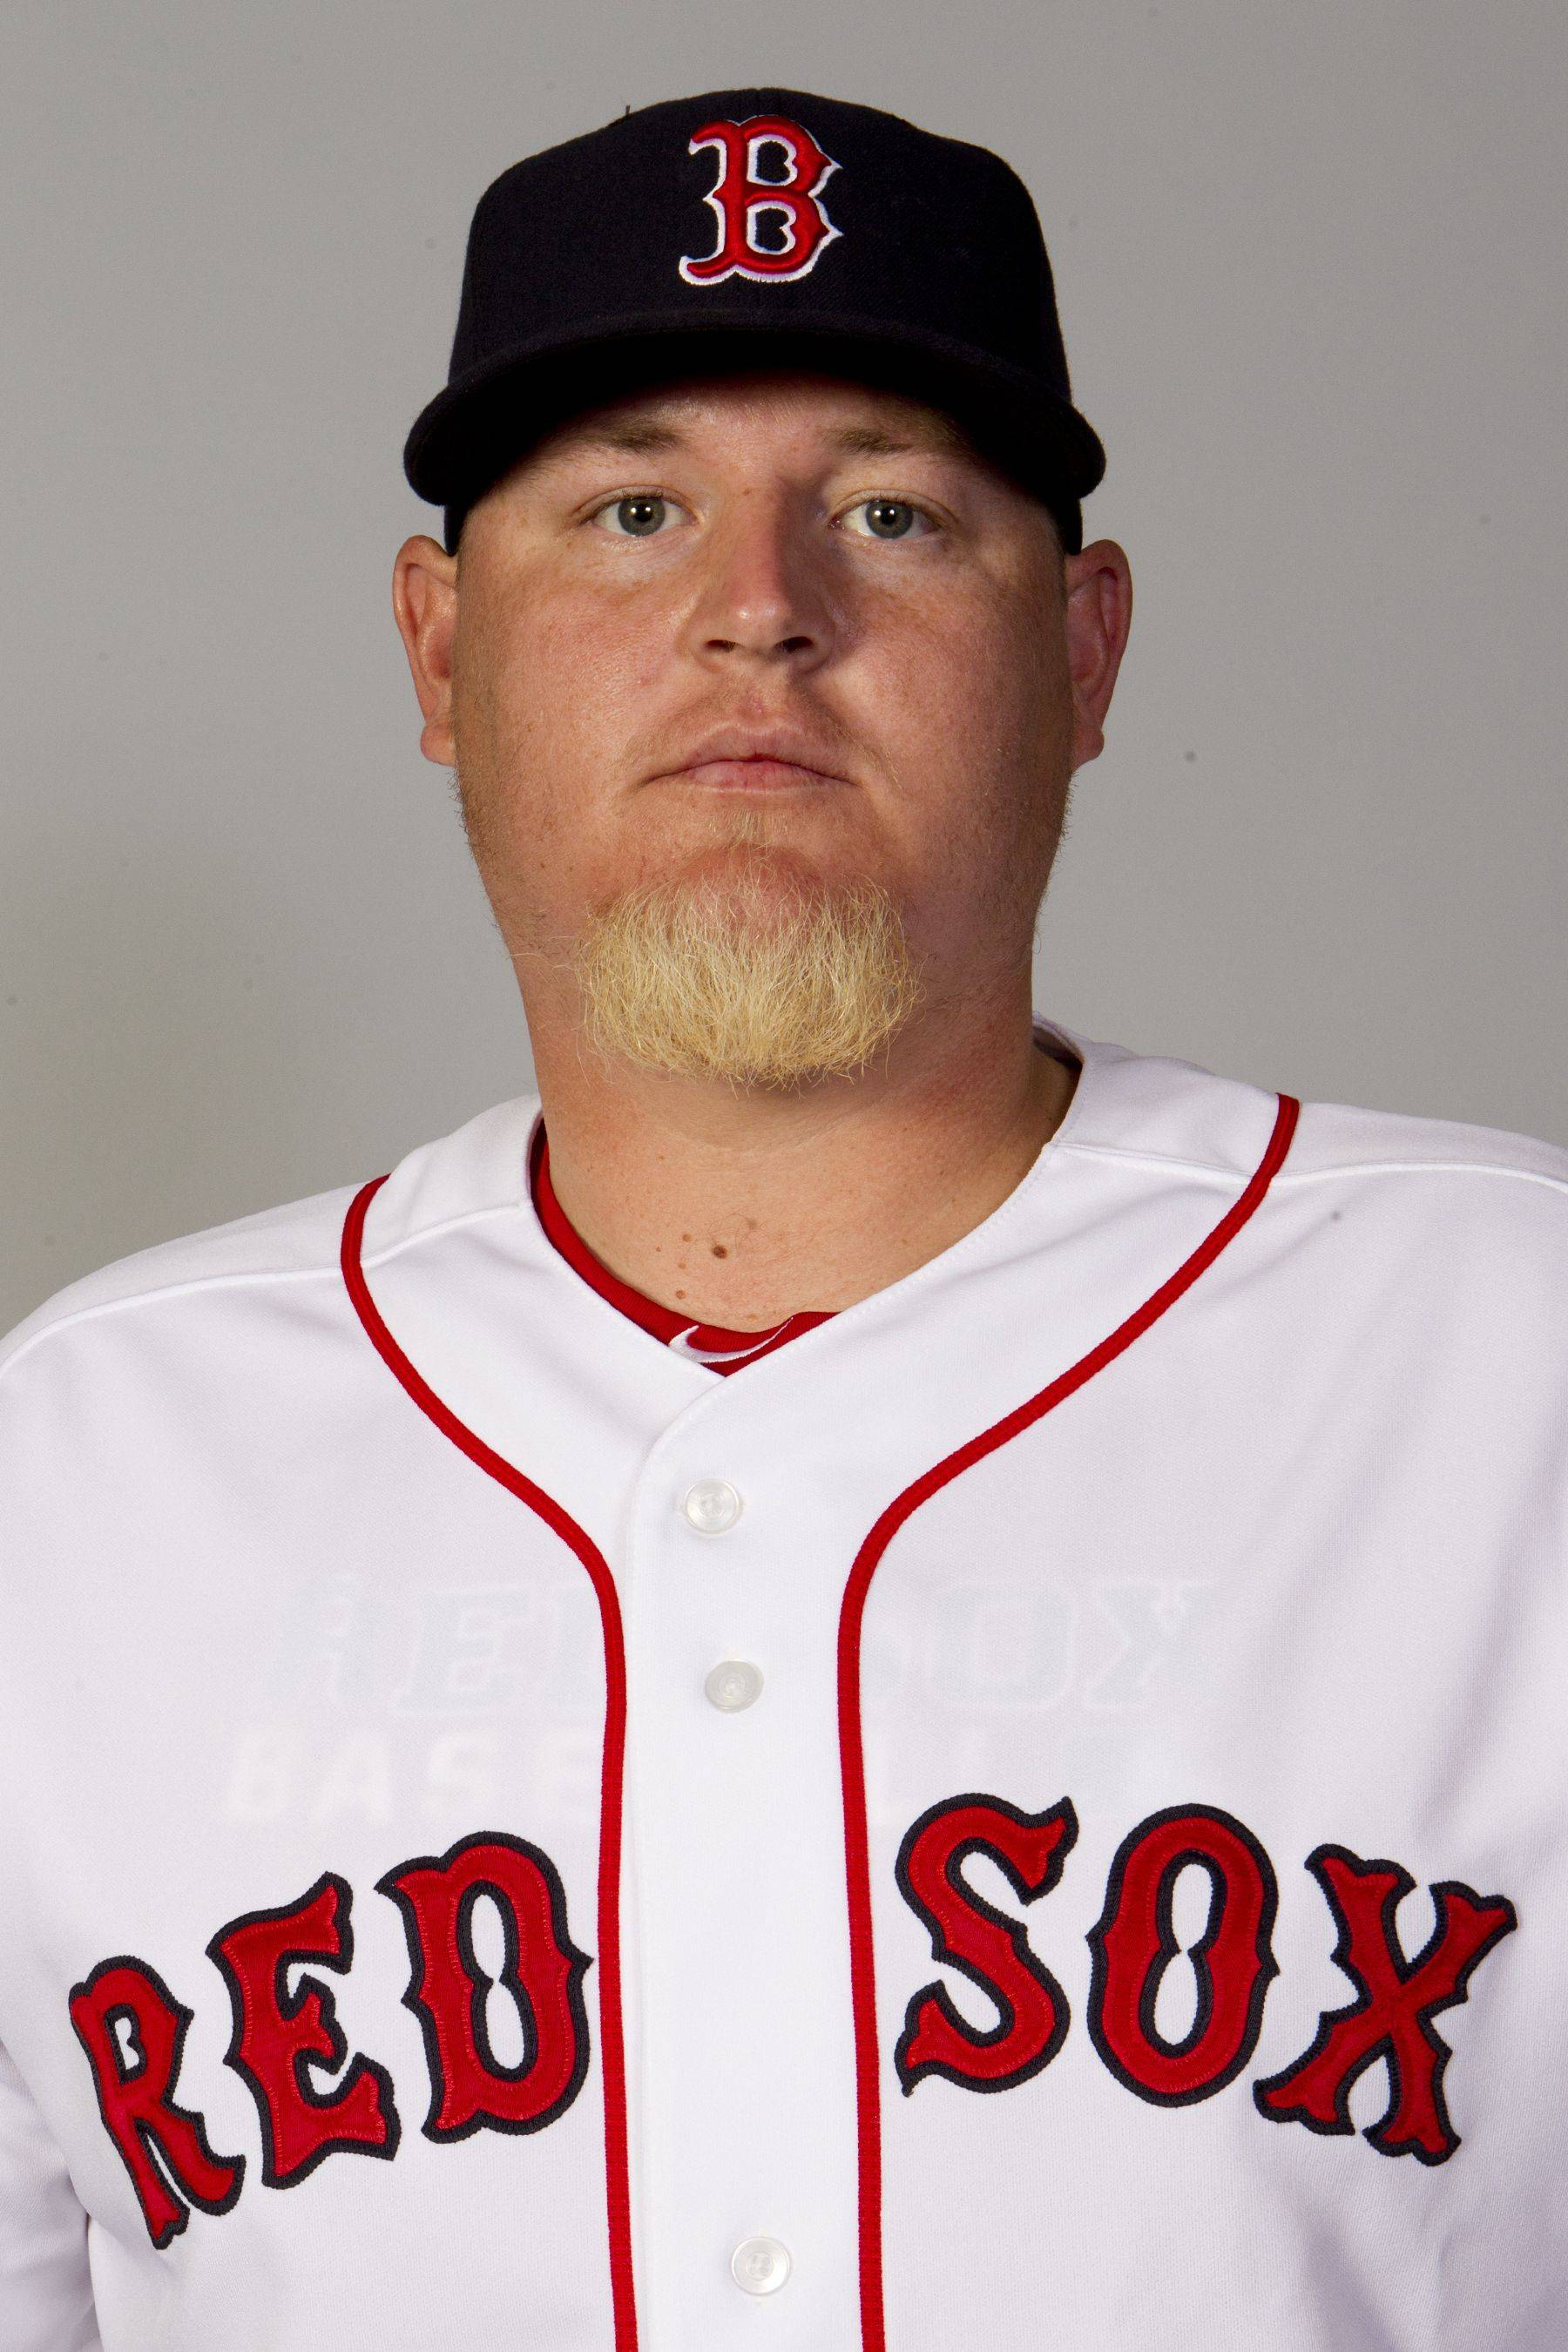 This is a 2011 photo of Bobby Jenks of the Boston Red Sox baseball team. This image reflects the Boston Red Sox active roster as of Sunday, Feb. 20, 2011 when this image was taken.